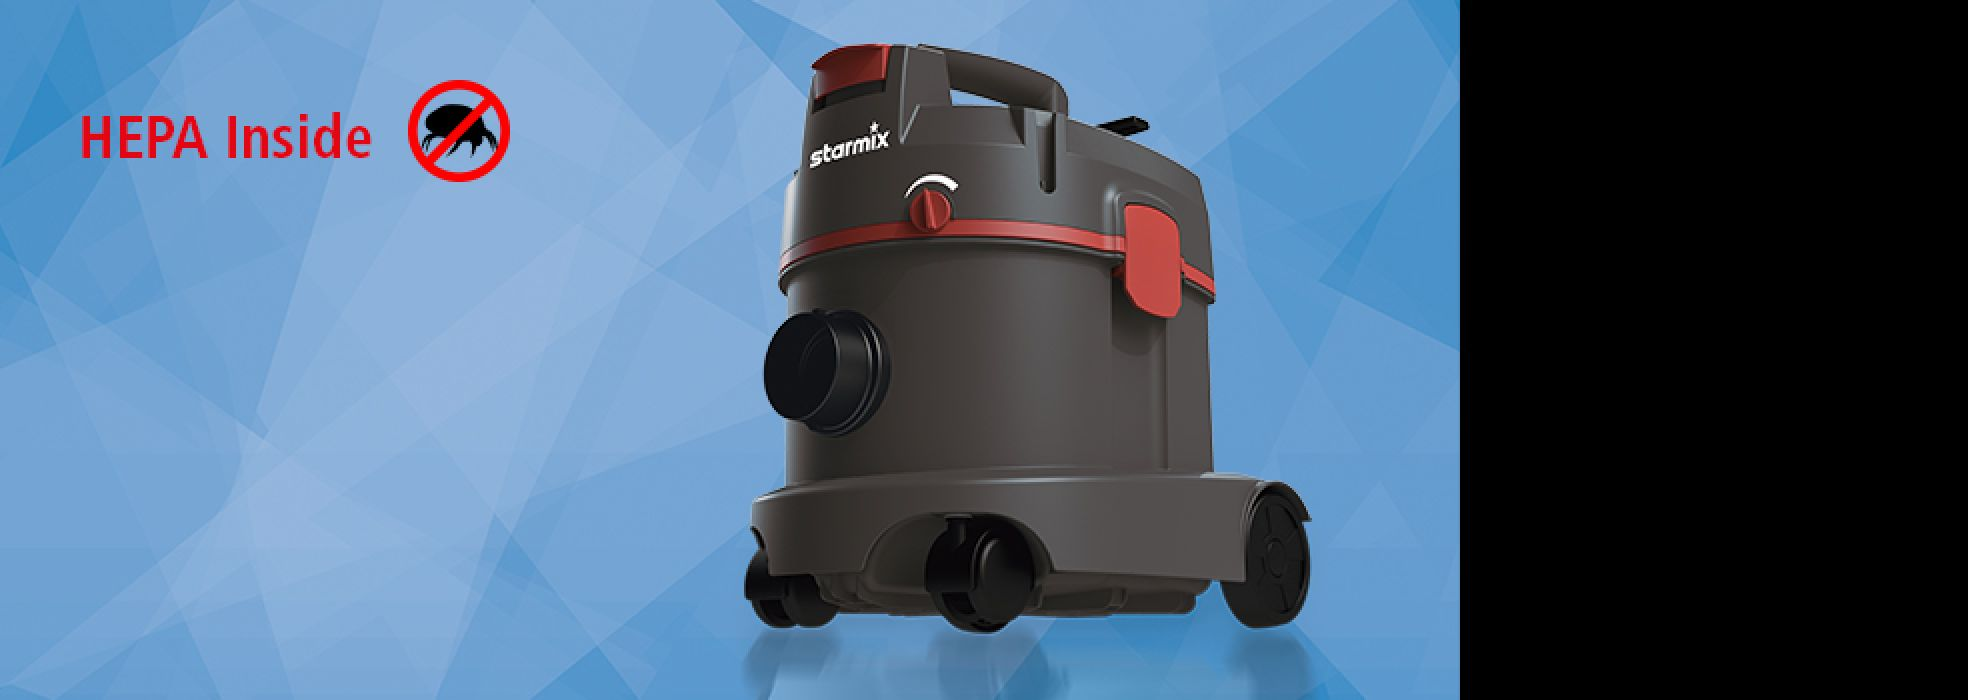 Dry vacuum cleaner with HEPA Filter